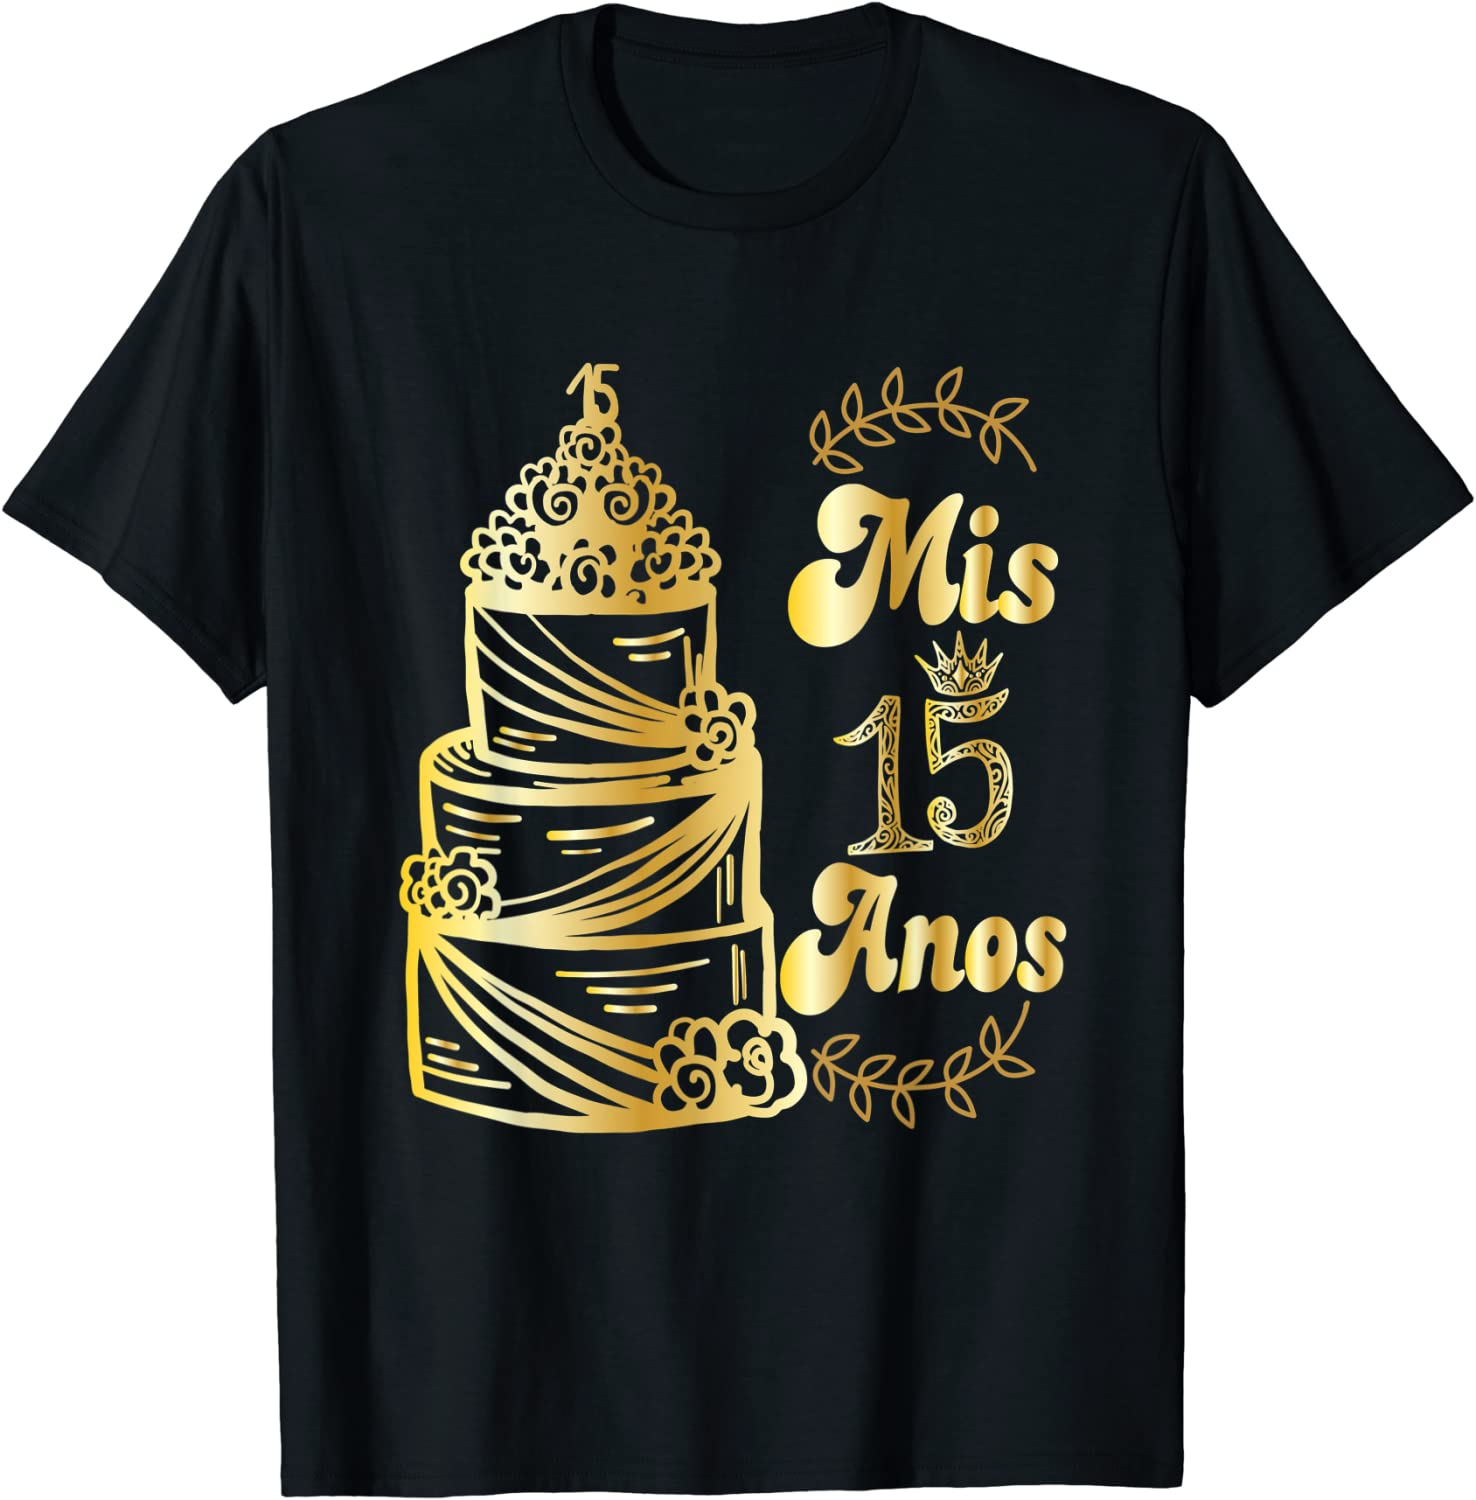 Mis 15 Anos Gifts for 15th Birthday T-Shirt